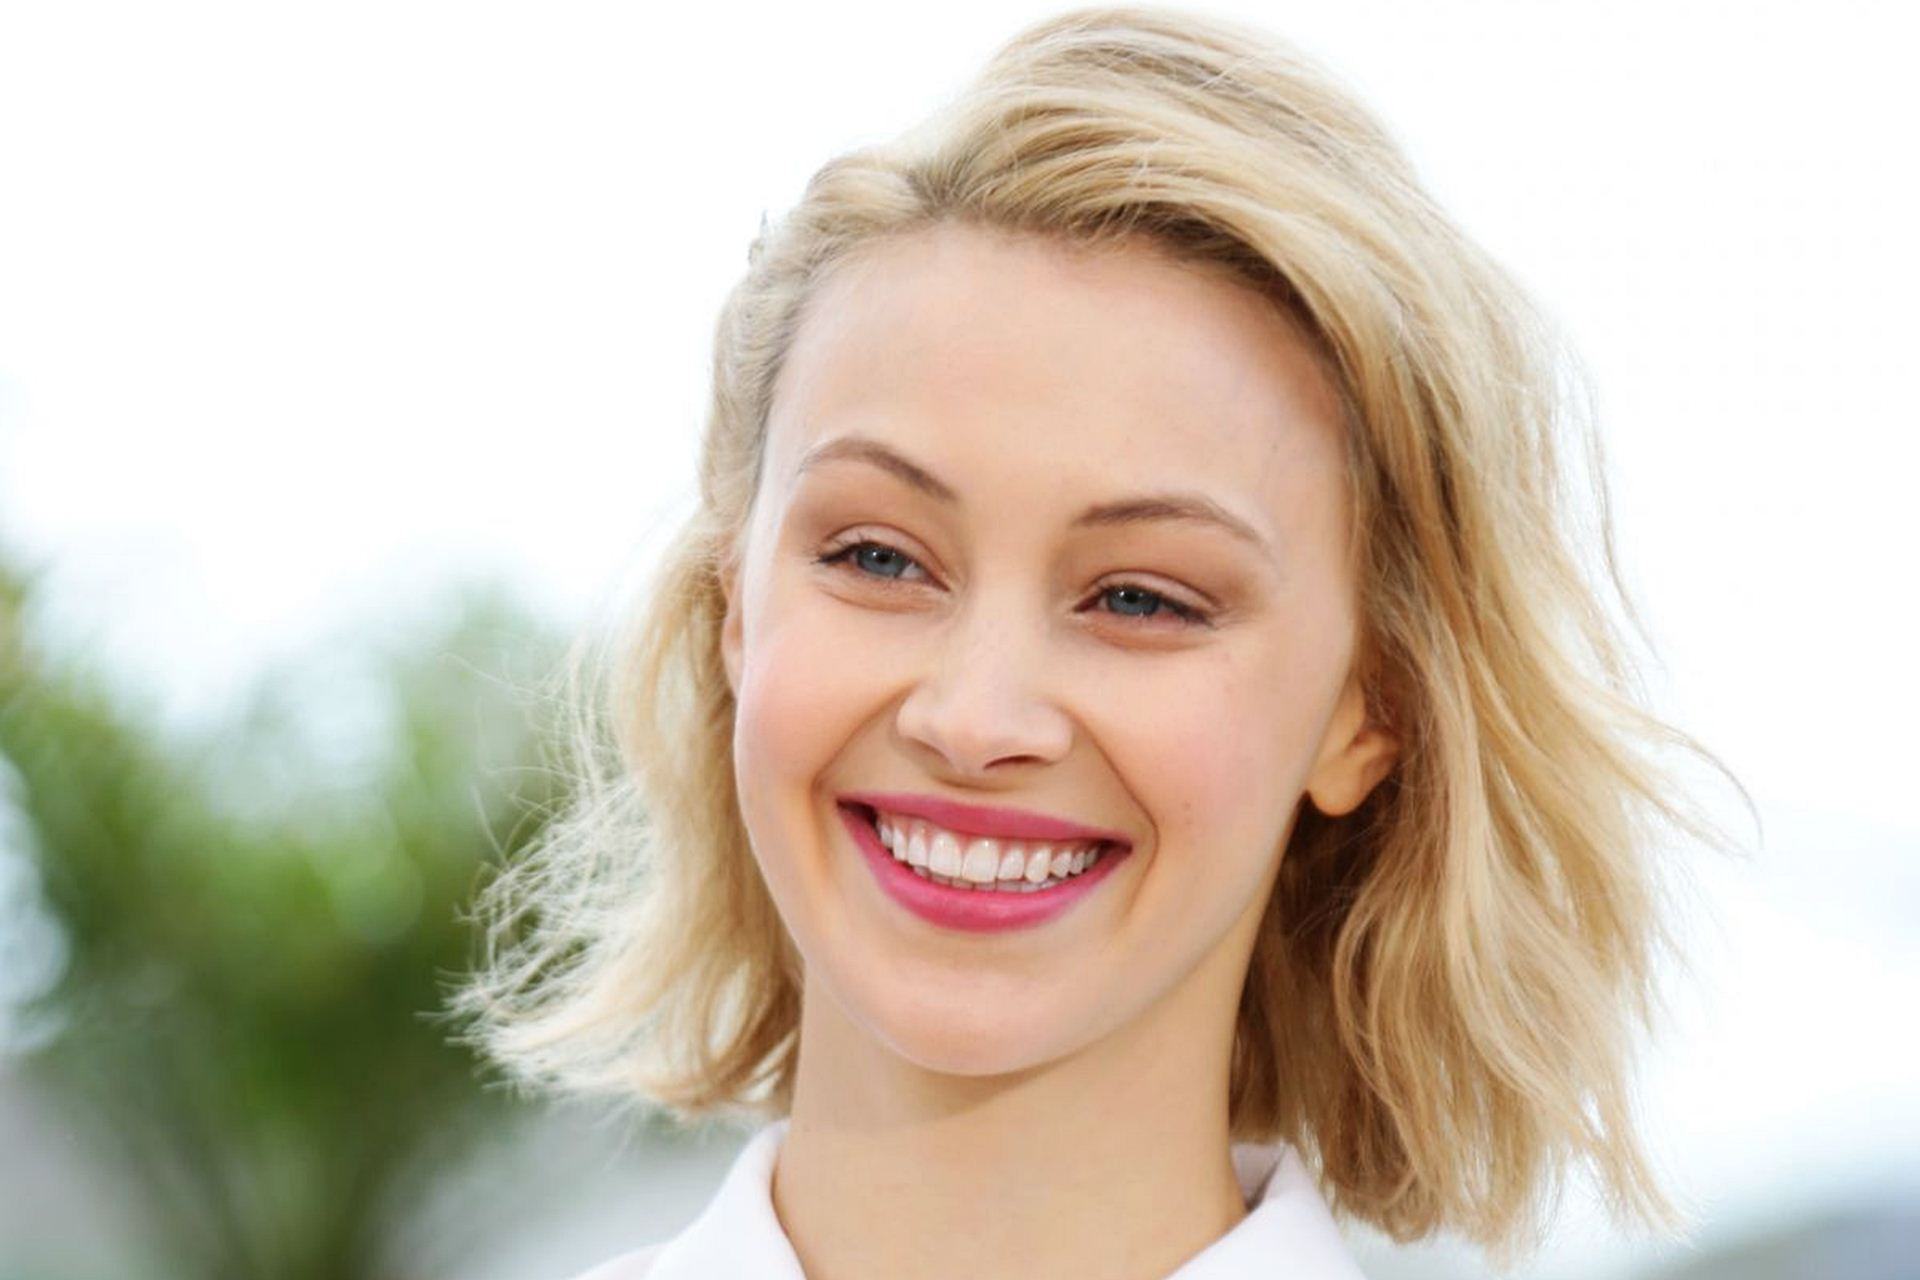 Sarah Gadons Wallpapers hd